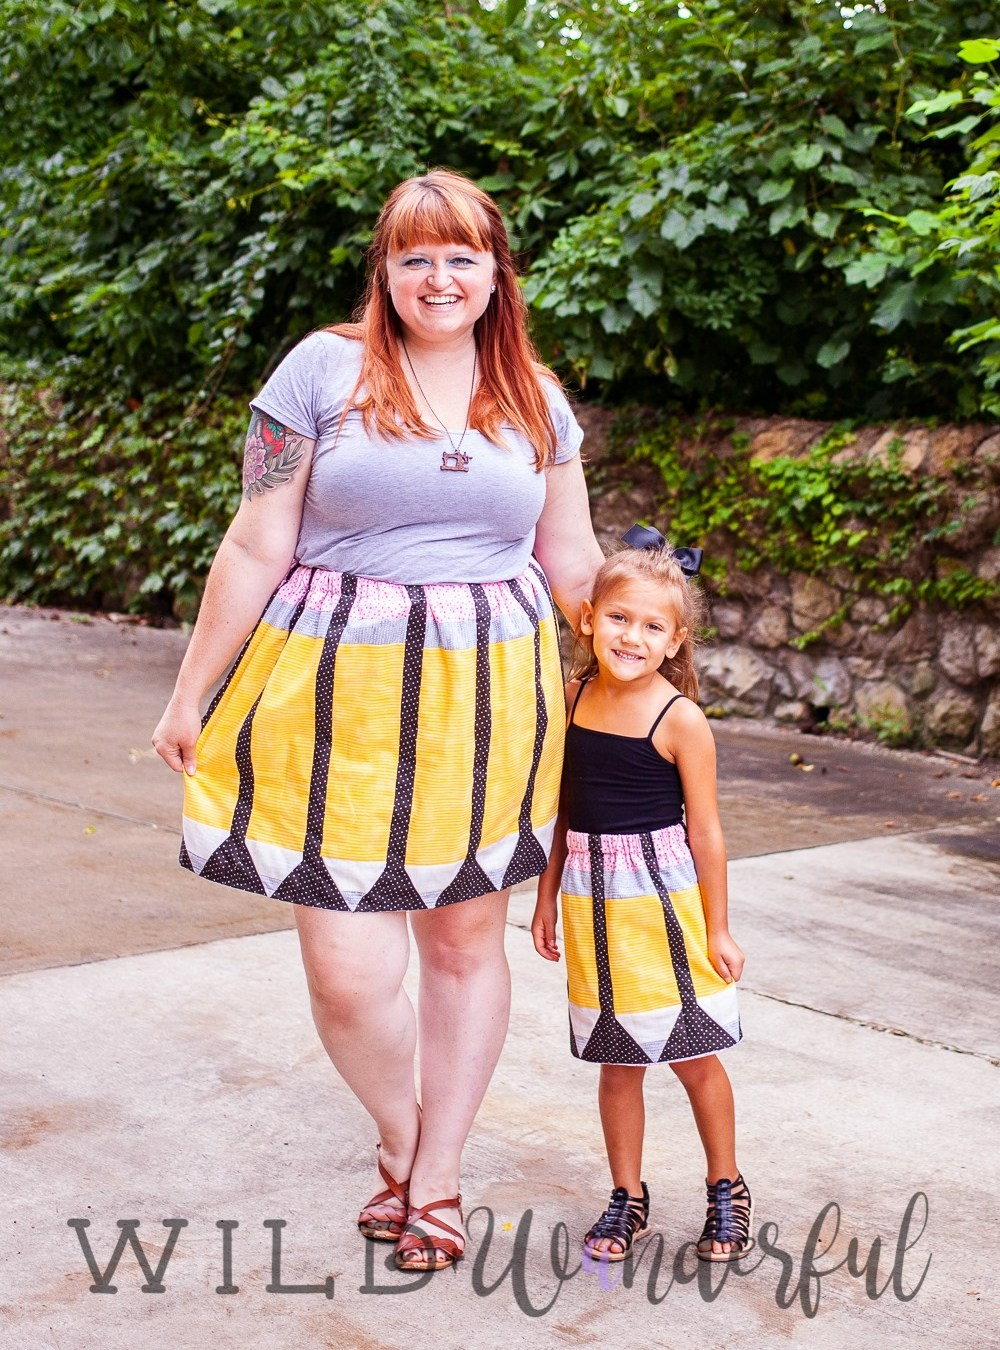 Just Write Skirt by Patterns for Pirates